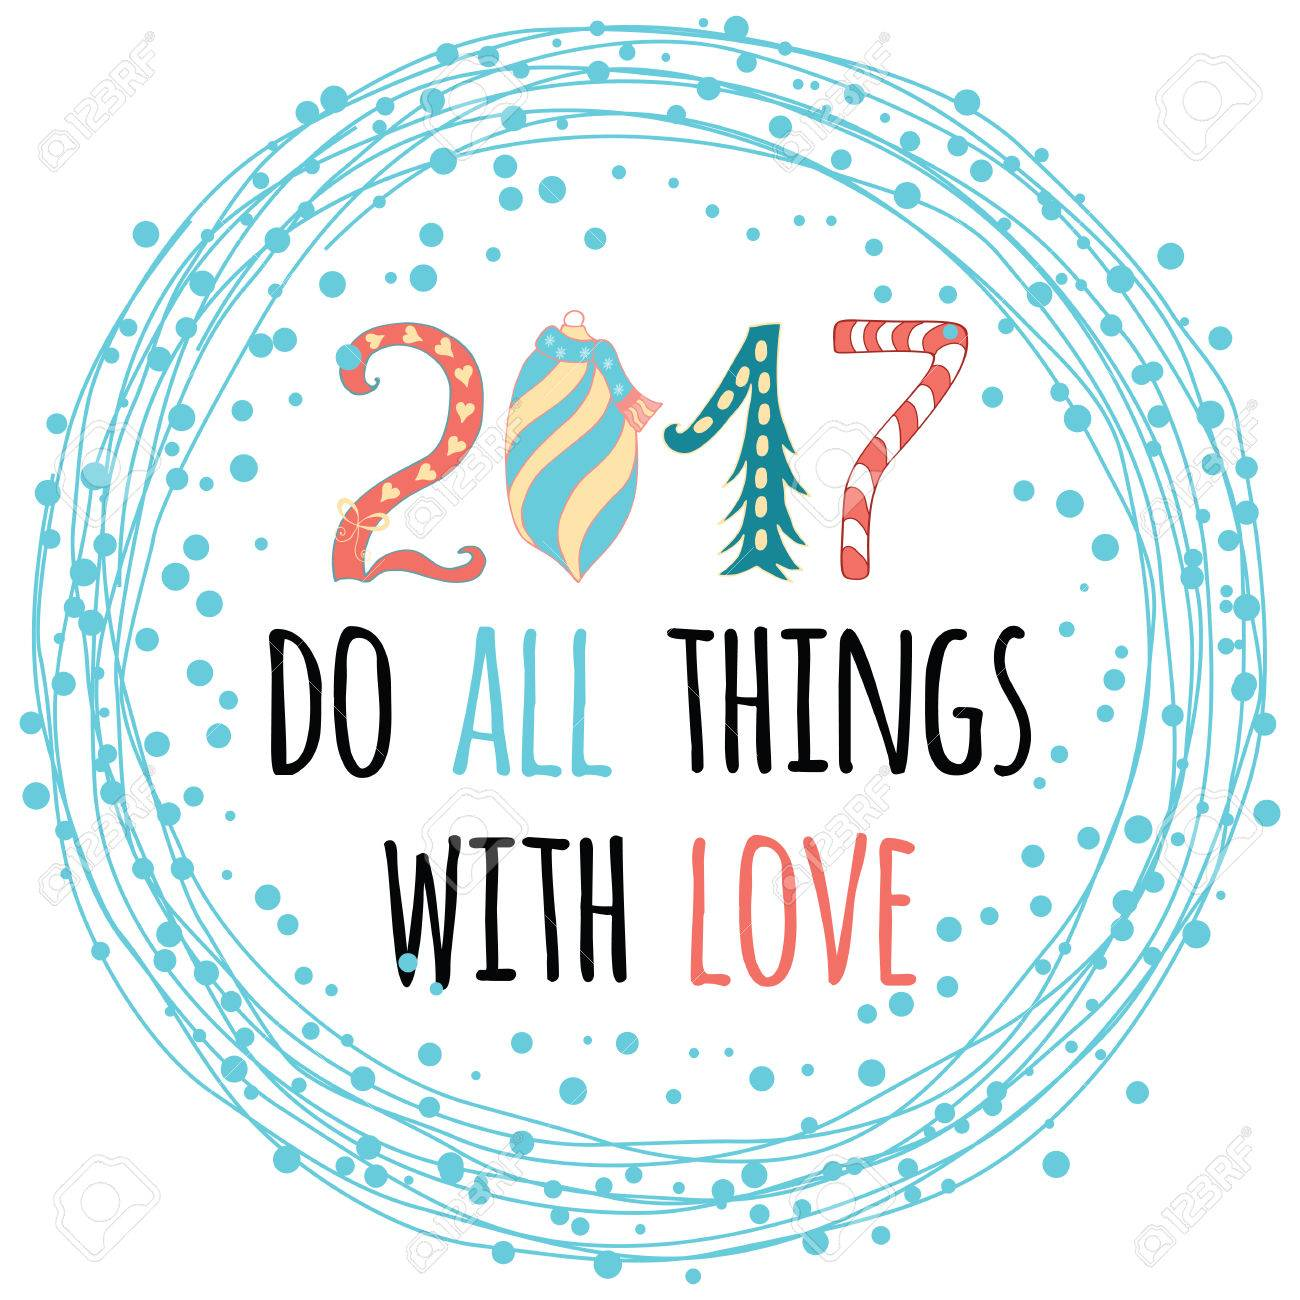 2017 Happy New Year Greeting Card Design With Innspiring Positive ...